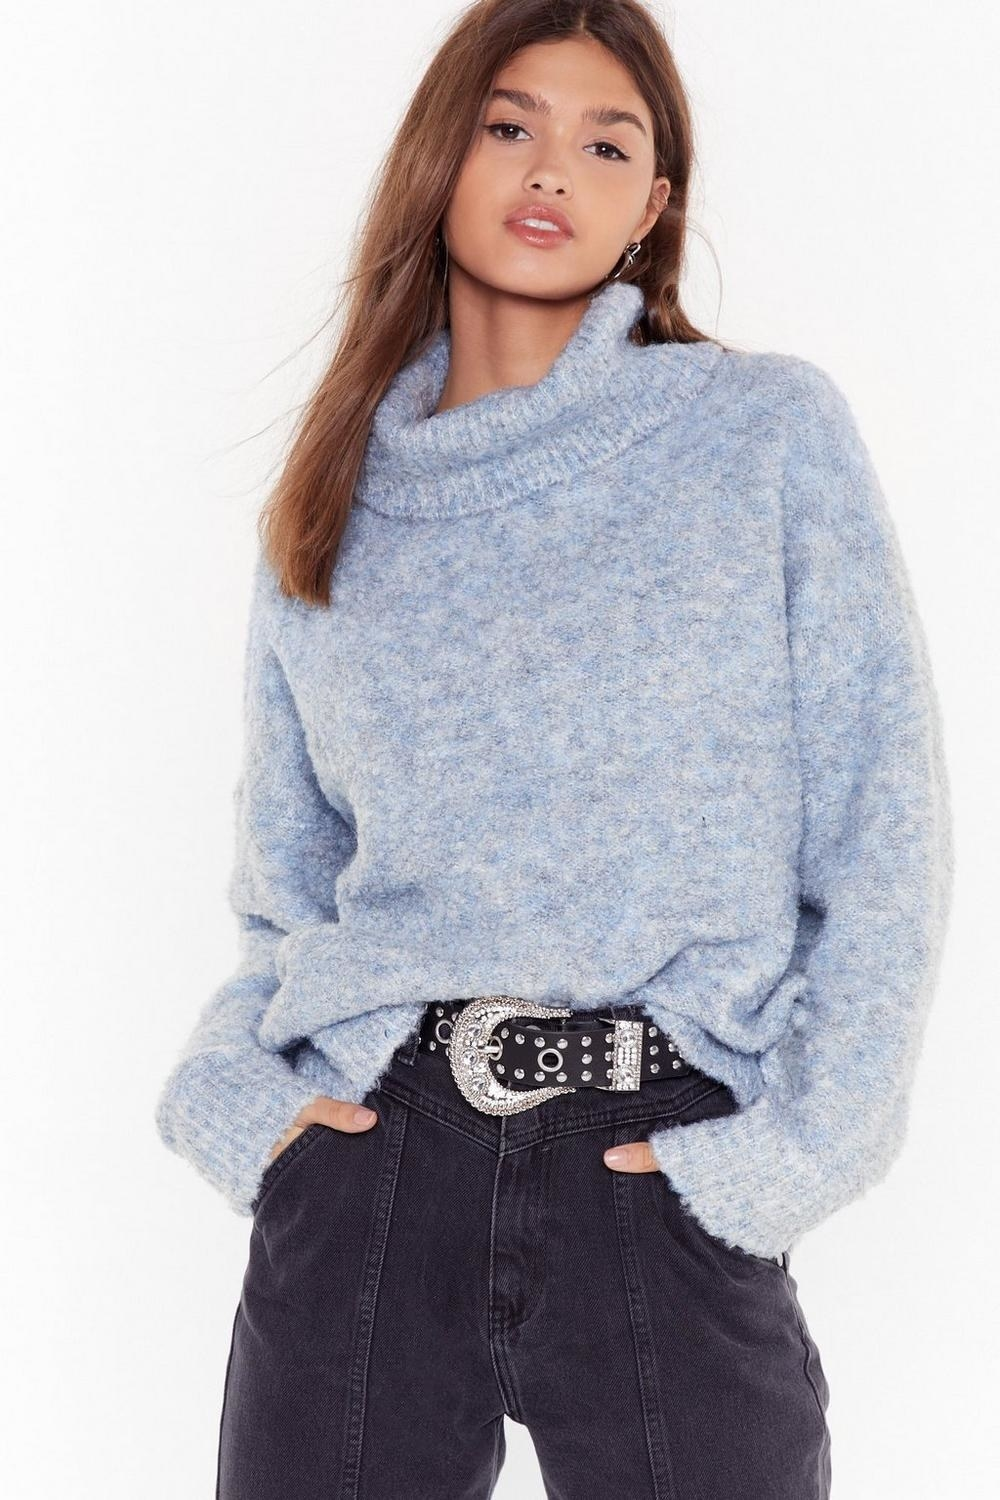 a model in the plush light blue sweater